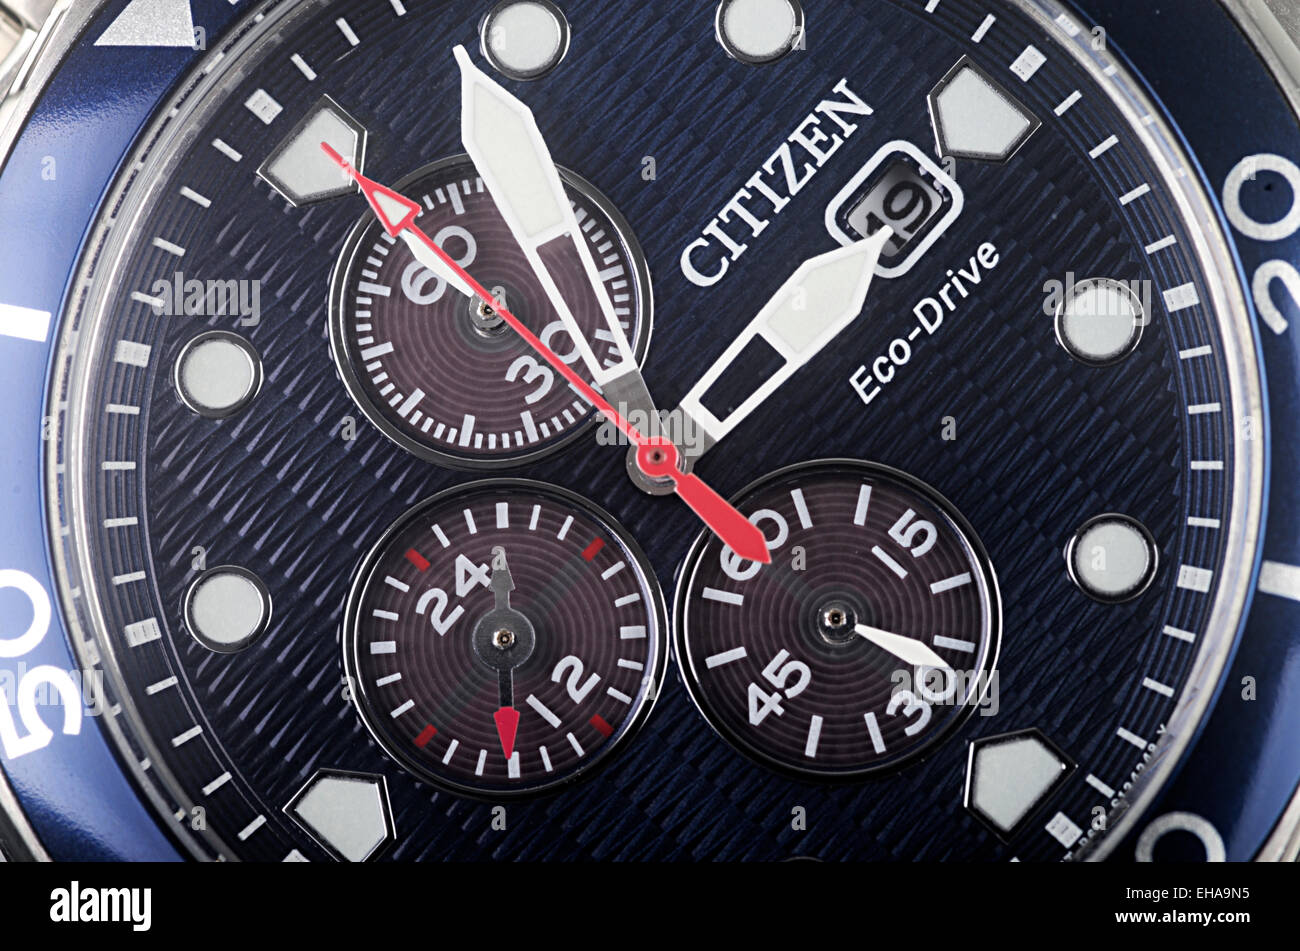 Macro Shot Of Face Of New Citizen Eco-Drive Man's Watch - Stock Image